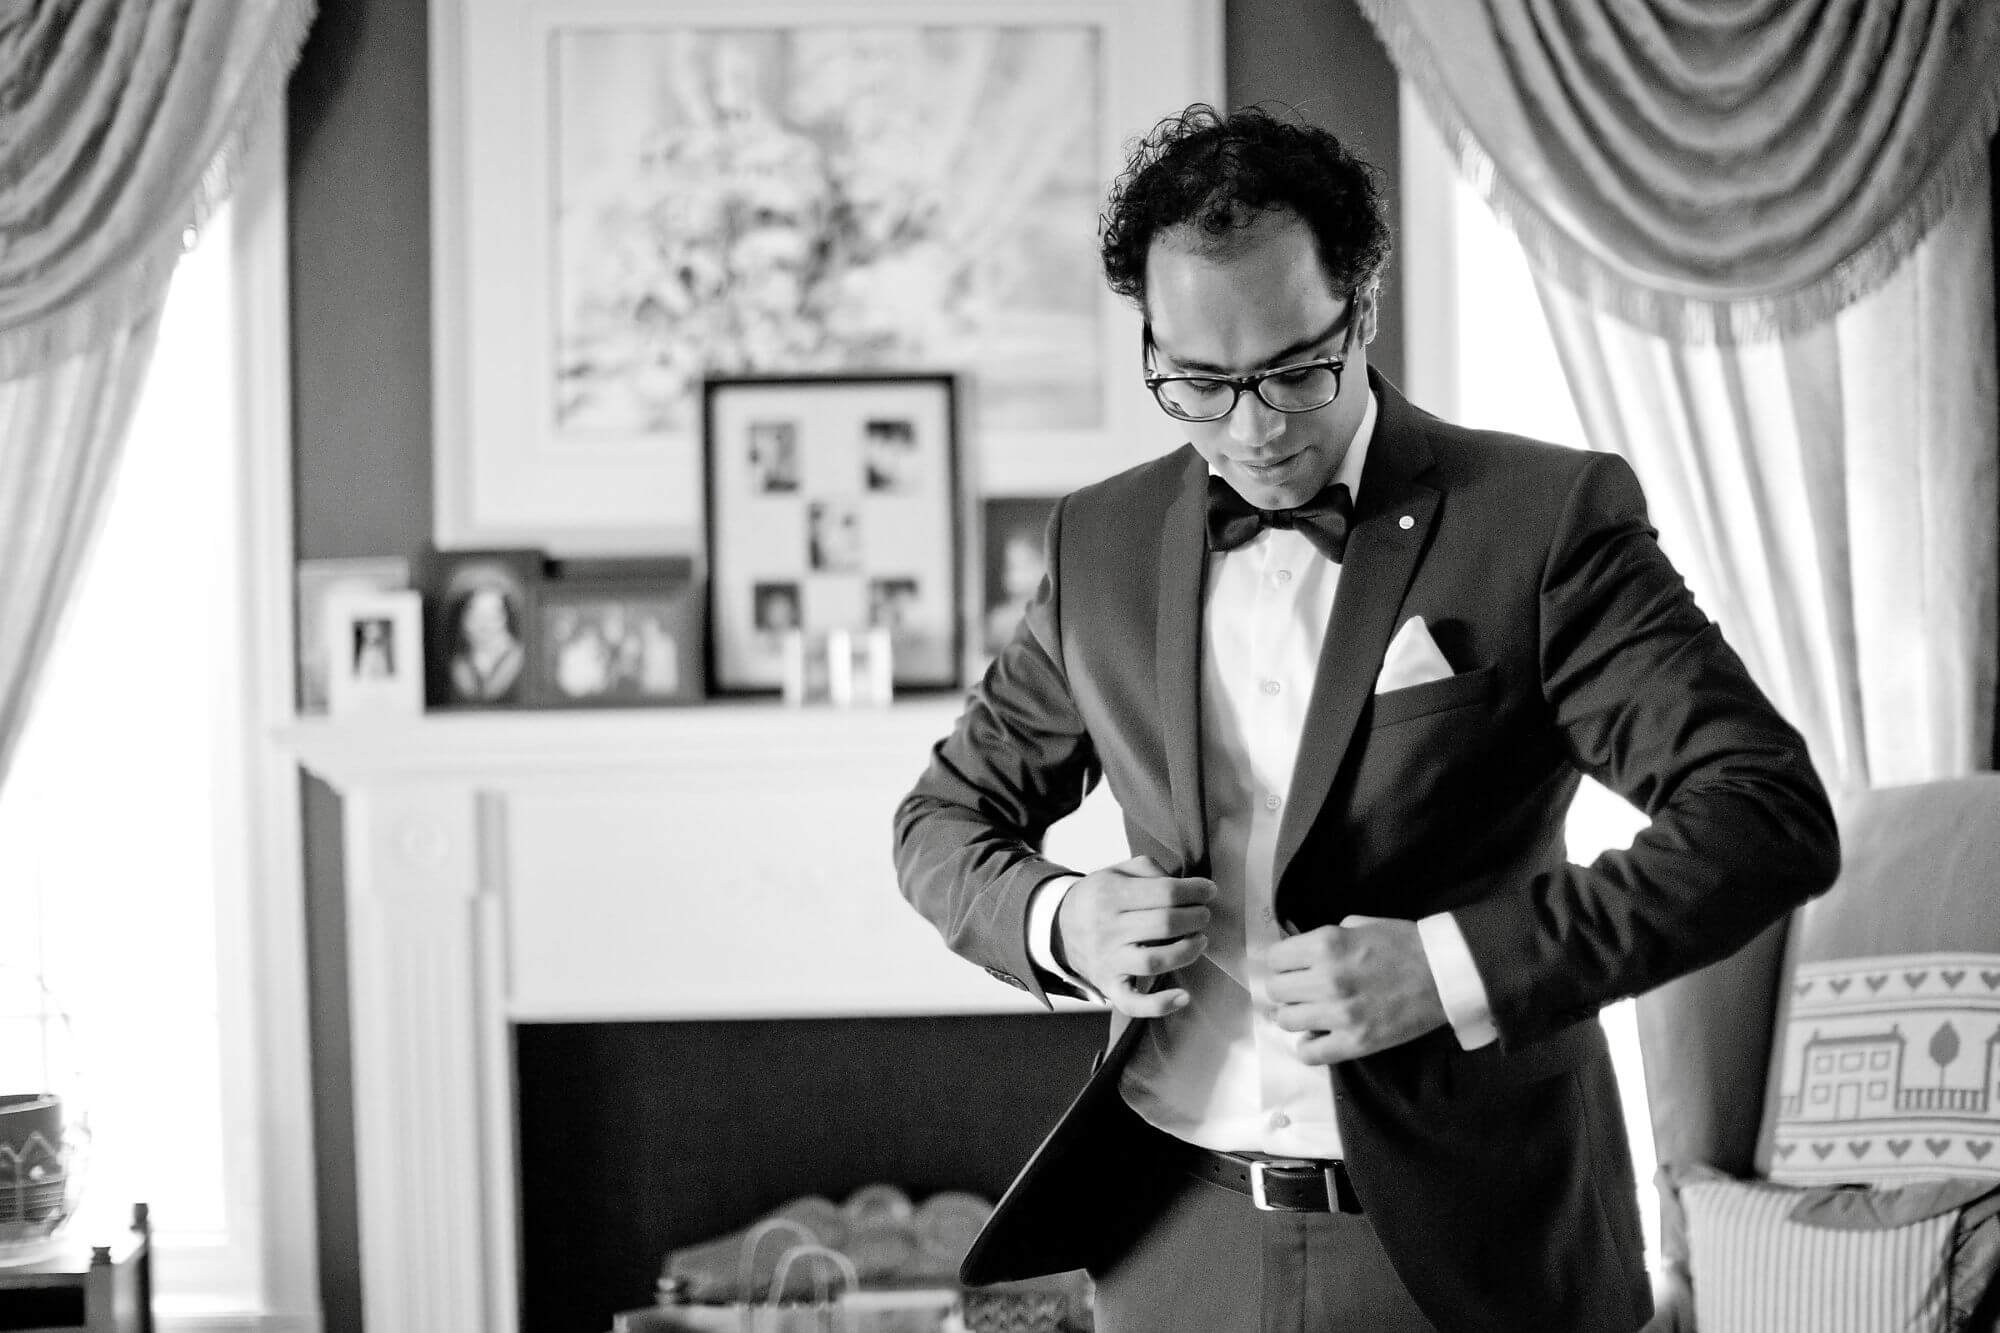 Black and white photo of groom getting ready, closing suit jacket - Niagara wedding - Historia Wedding and Event Planning